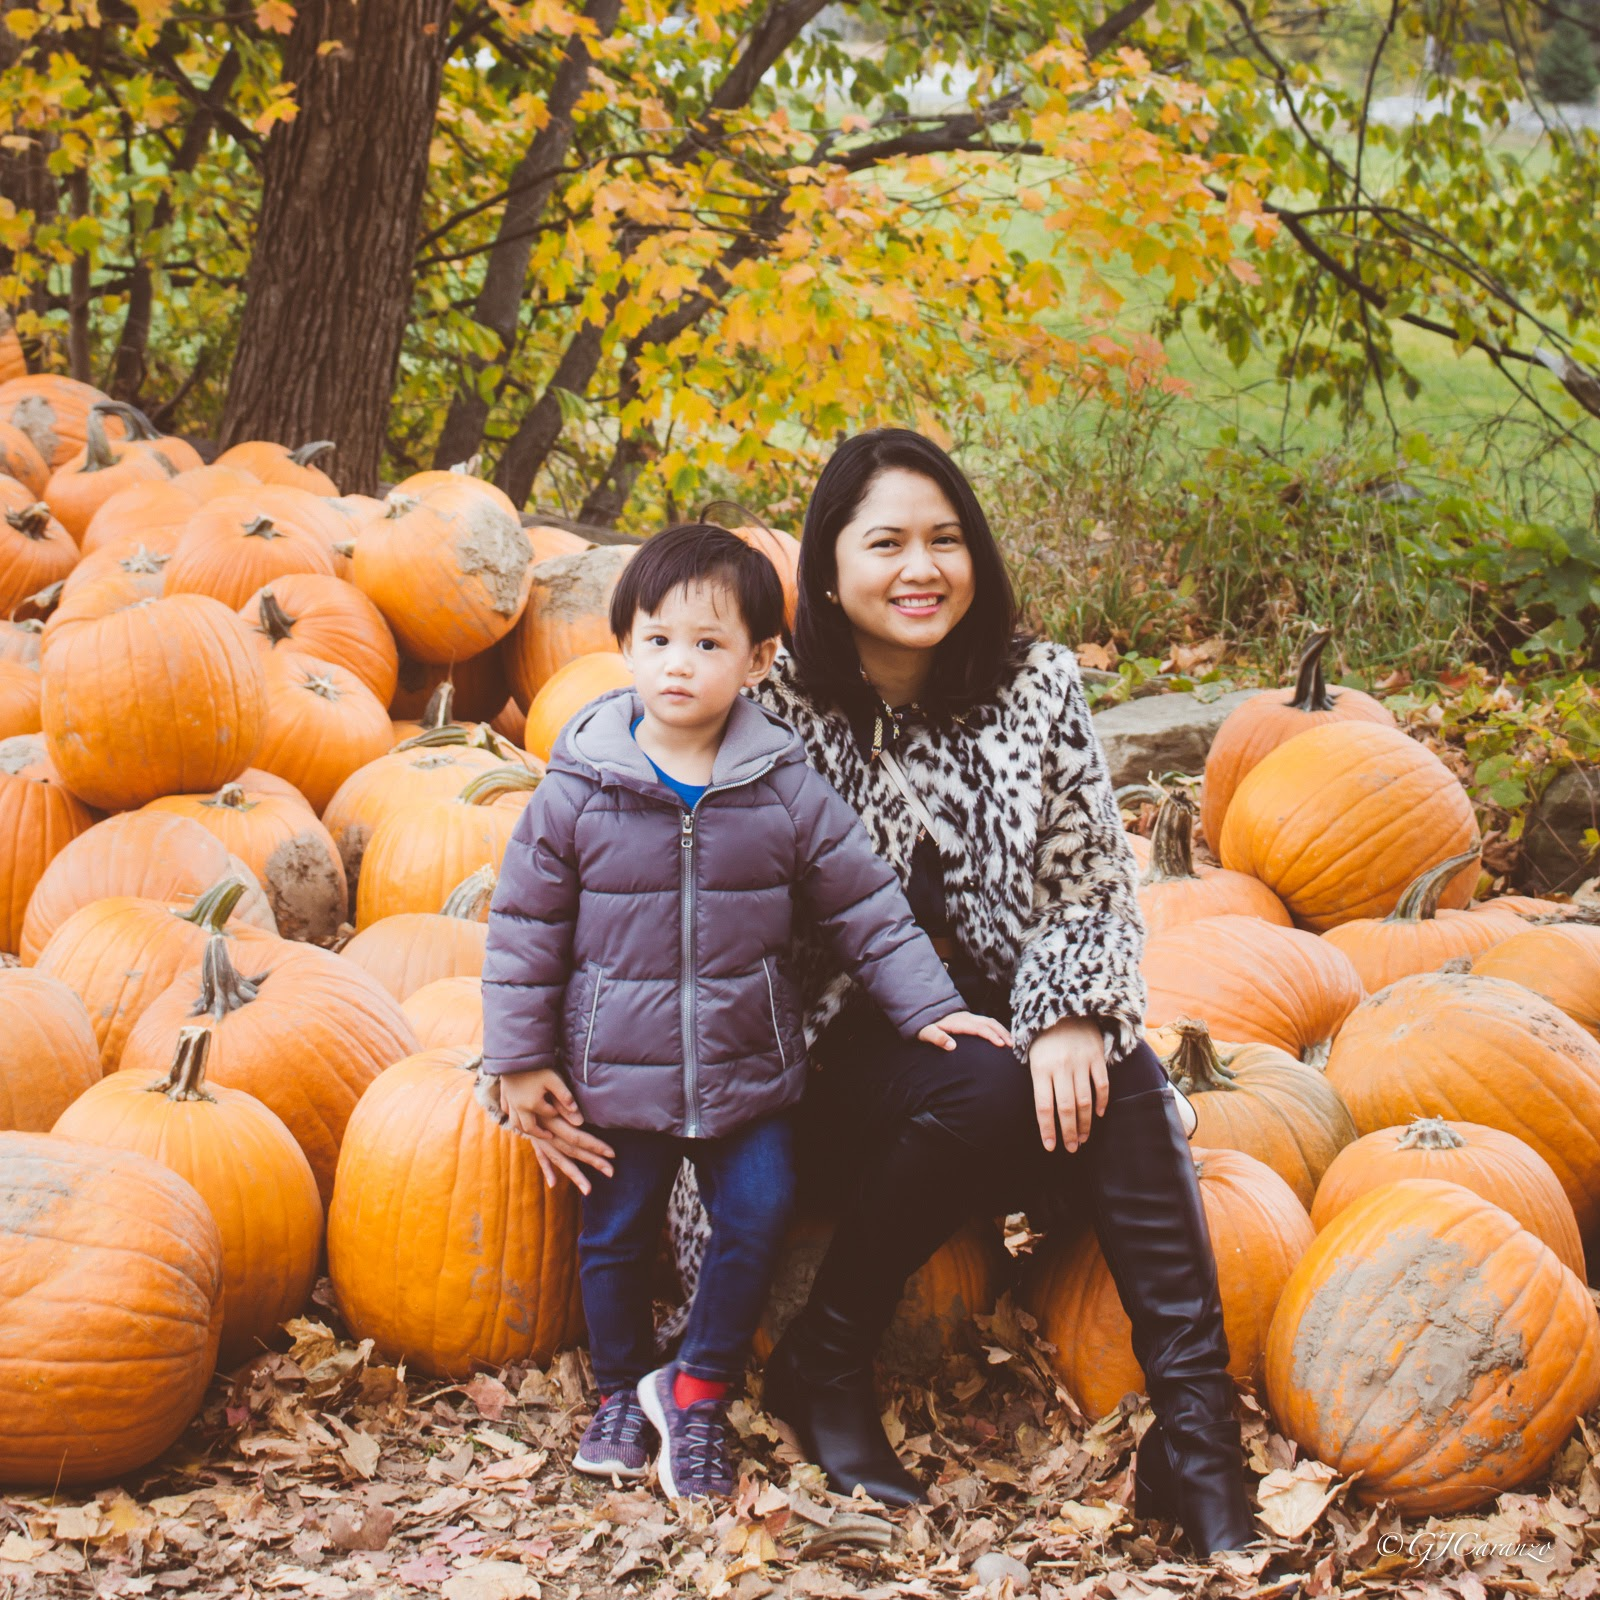 Things To Do in Ottawa, Ontario in Fall